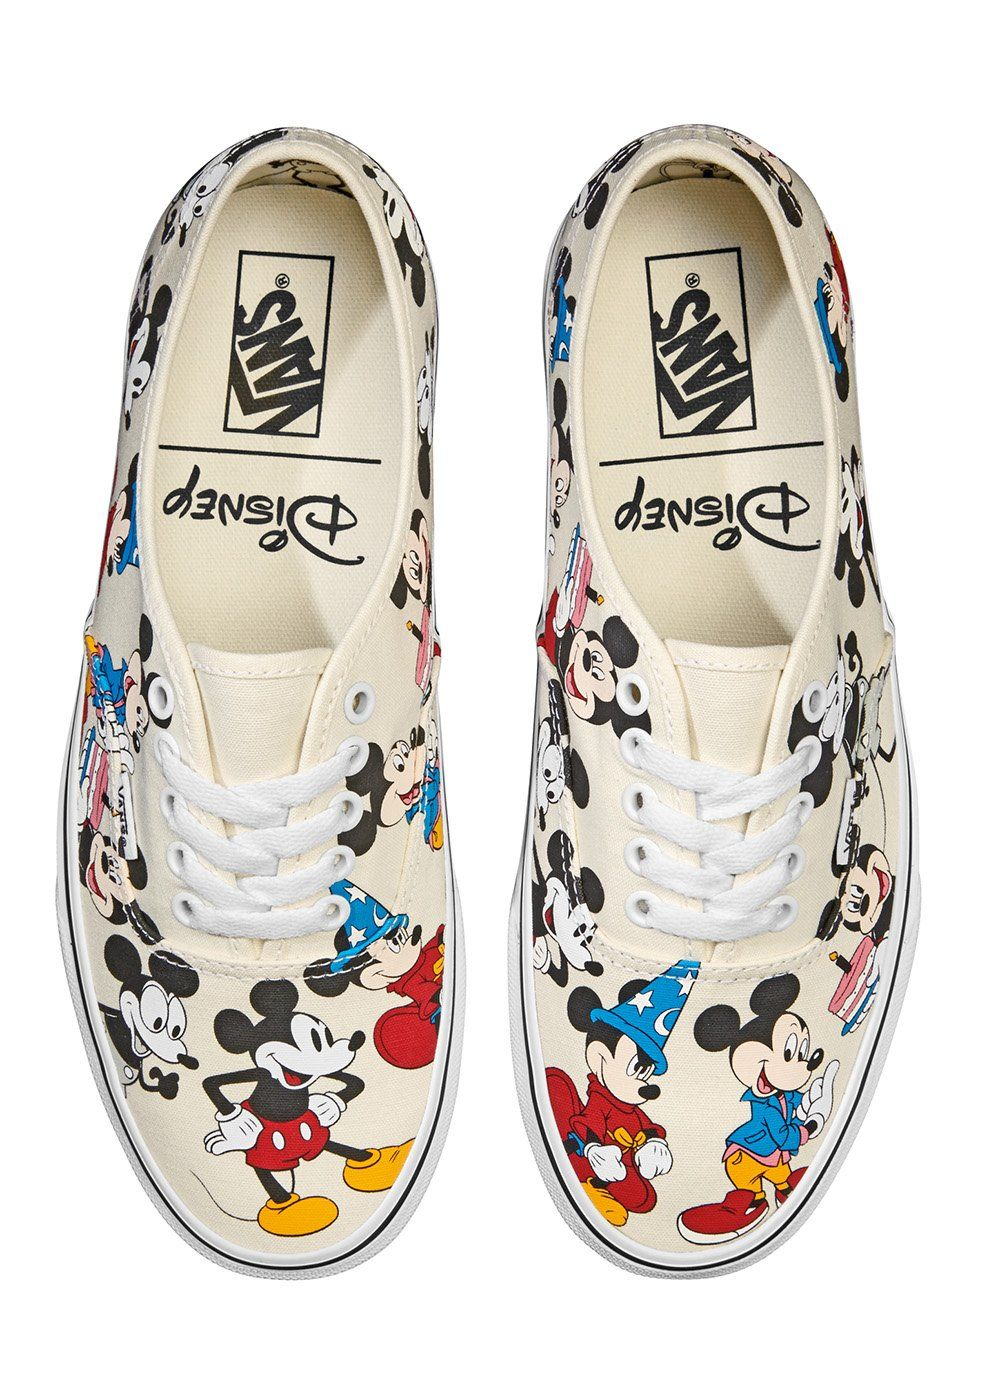 9ebba3ff75960e Vans Disney Authentic Mickey s Birthday - Mens Large Sizes